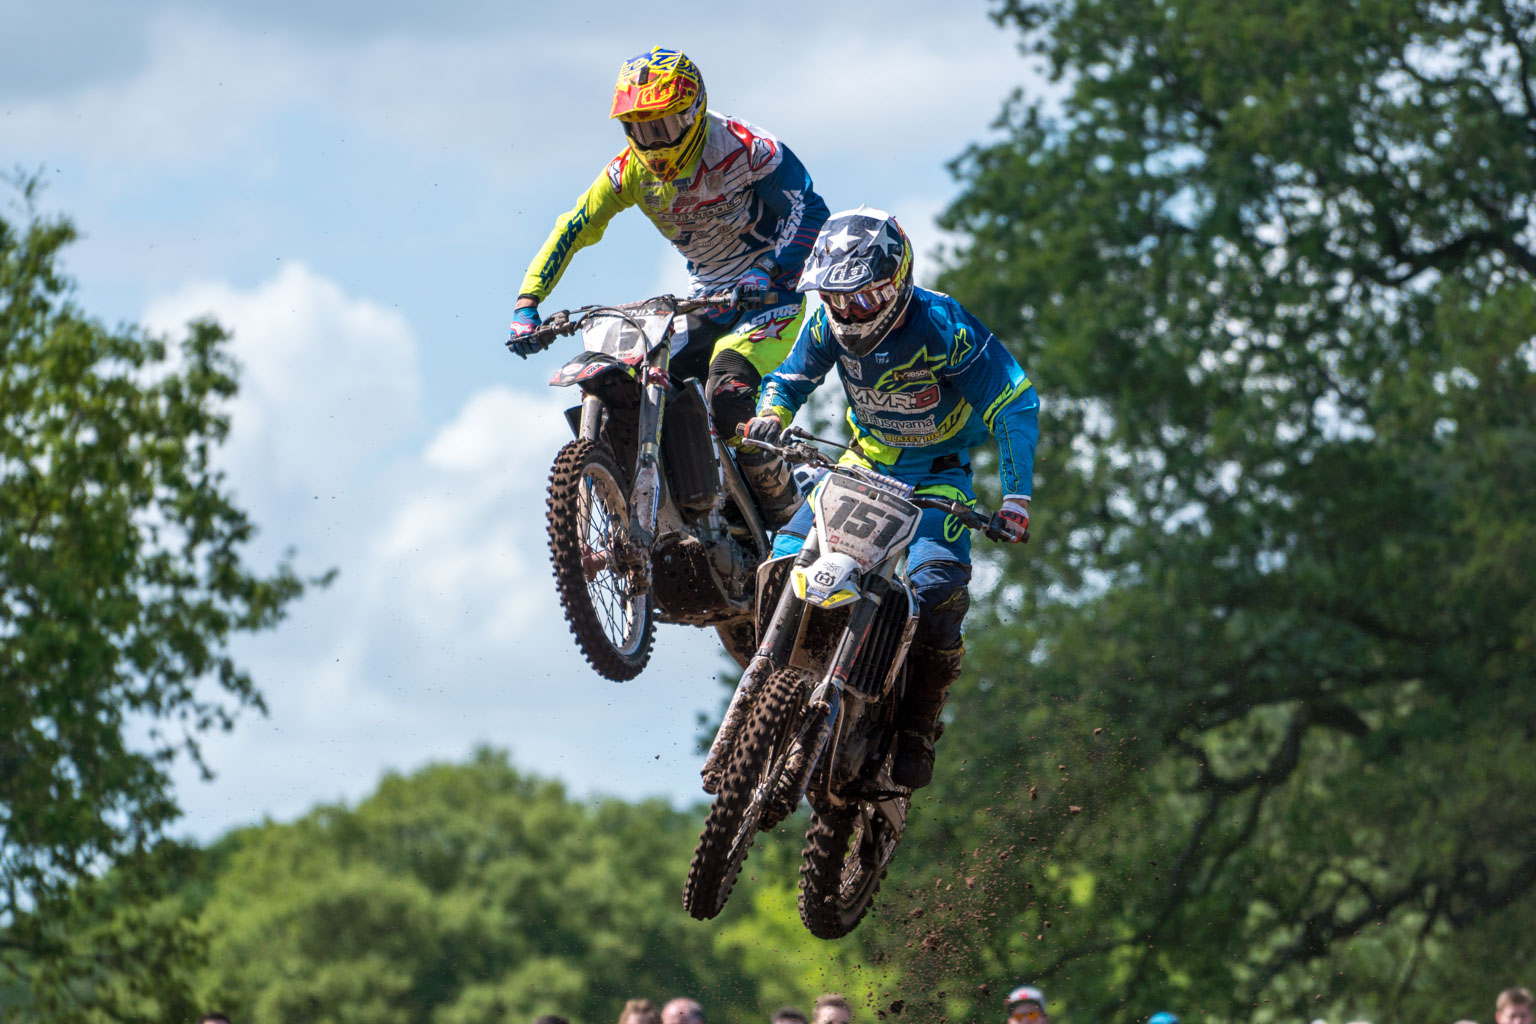 Kullas leads Carton Husband in MX1